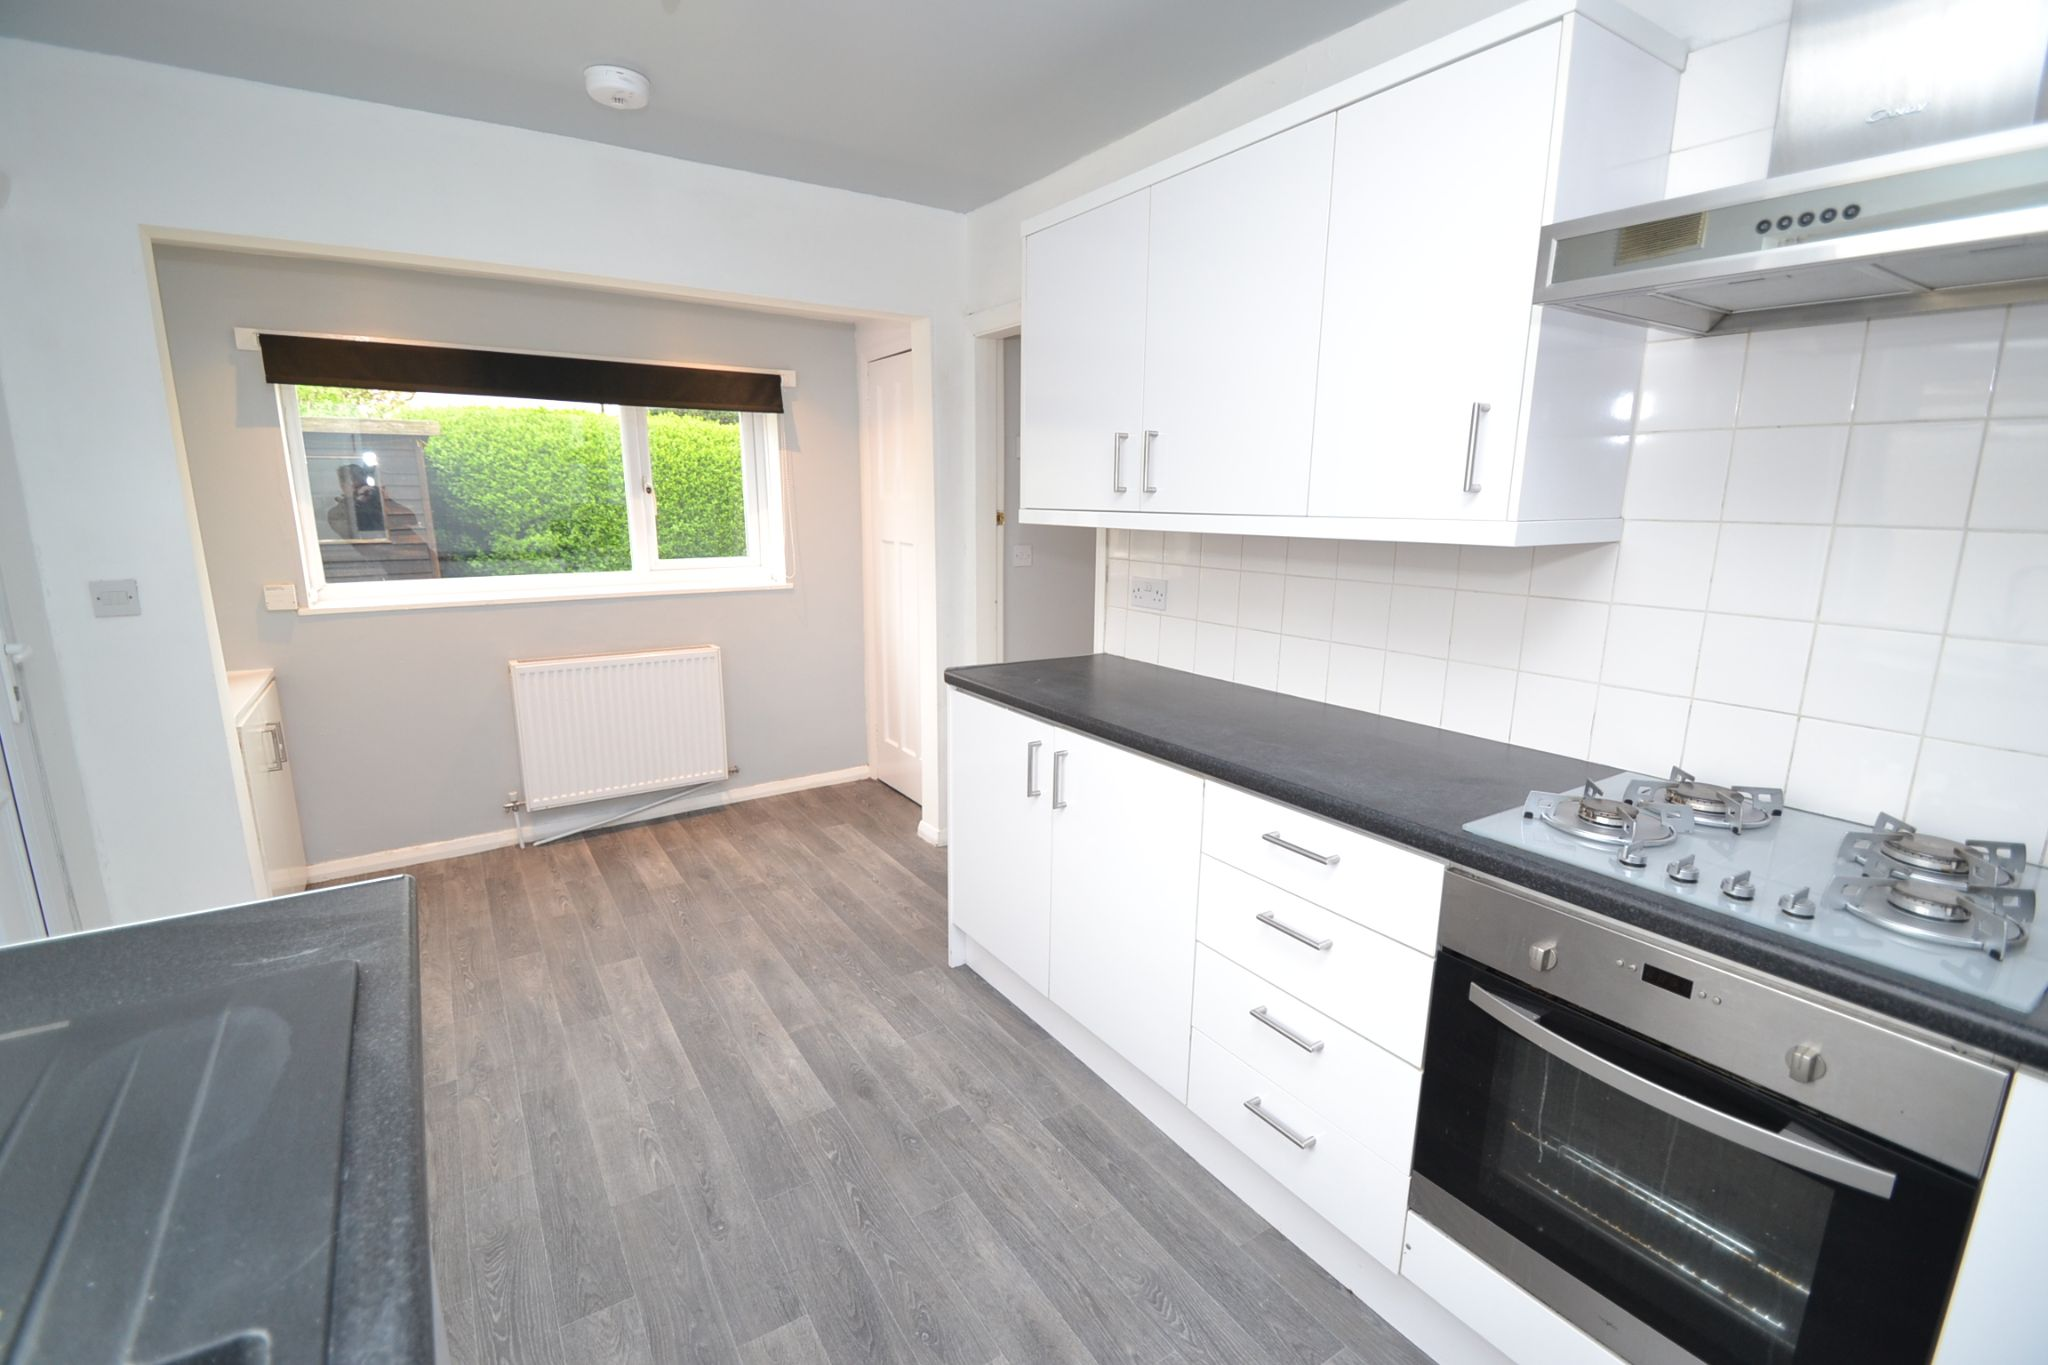 2 Bedroom Semi-detached House For Sale - Photograph 5